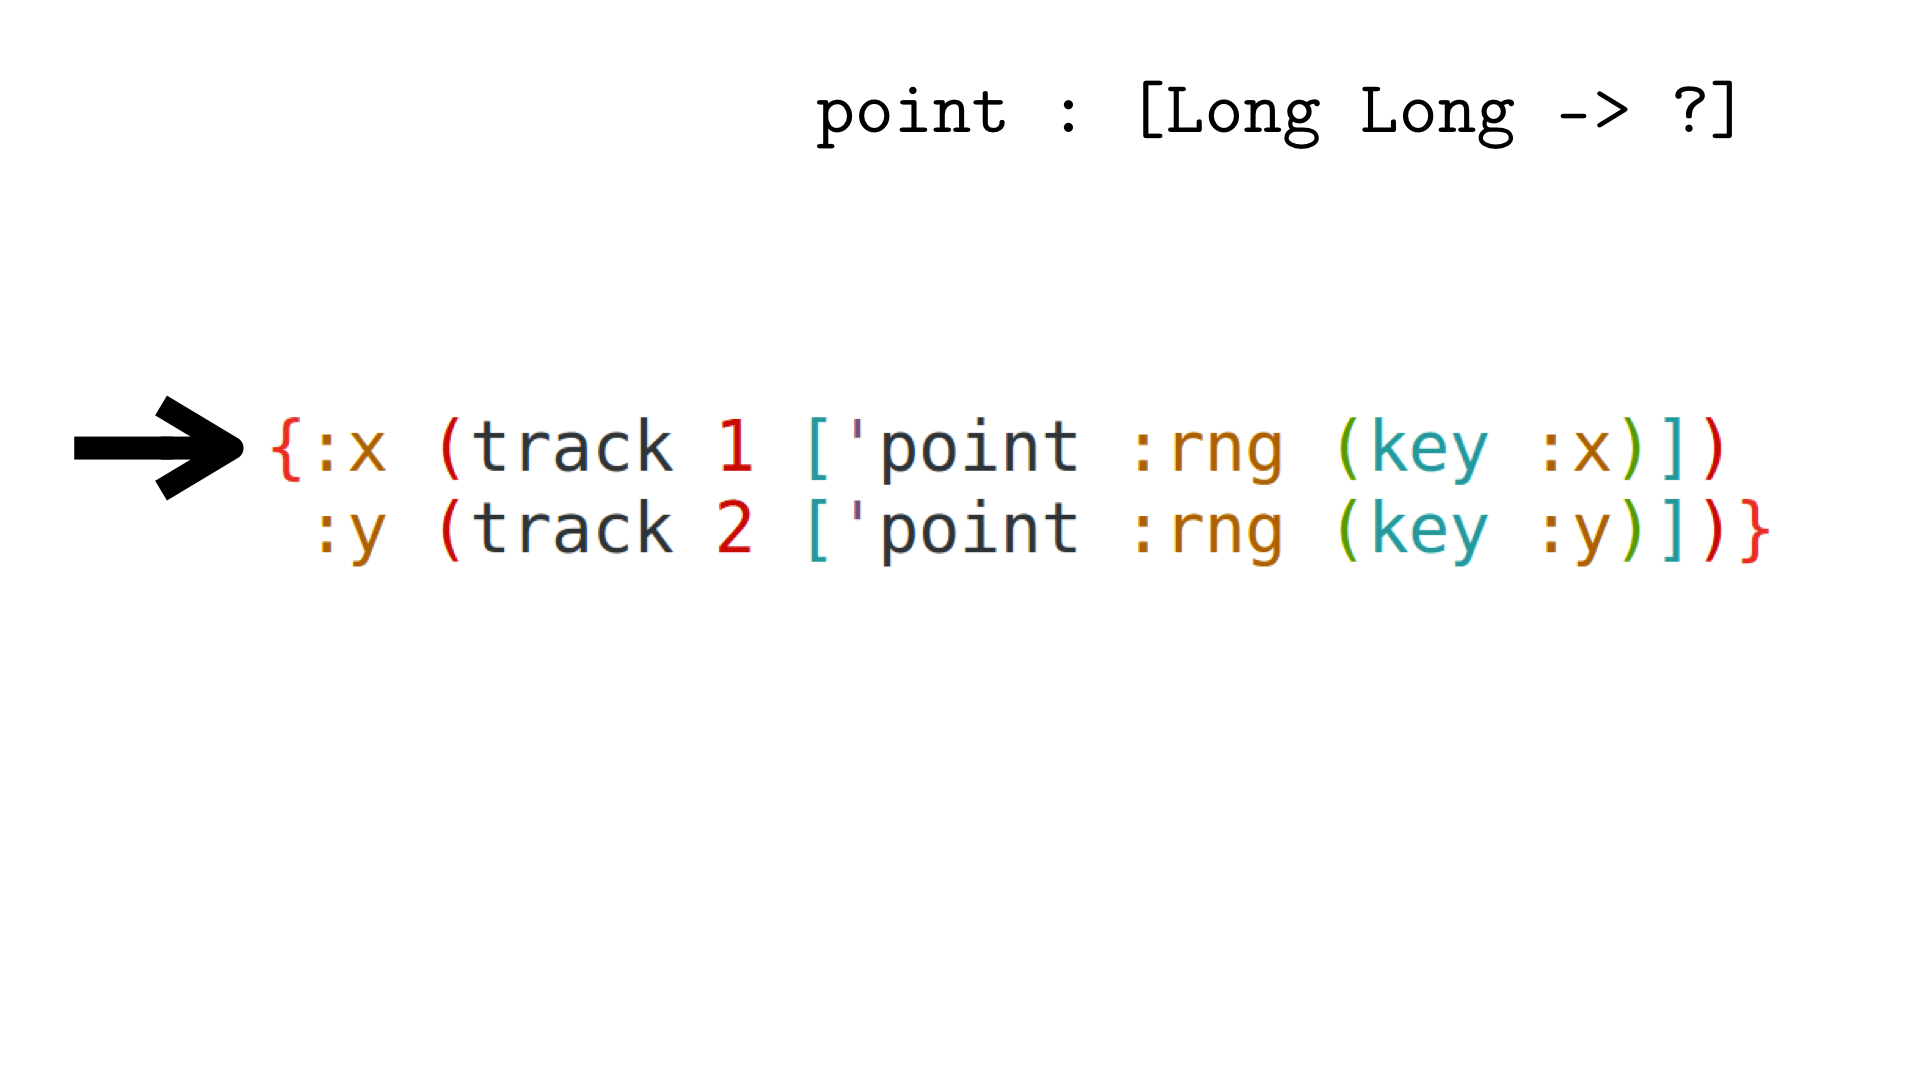 Further tracking of function